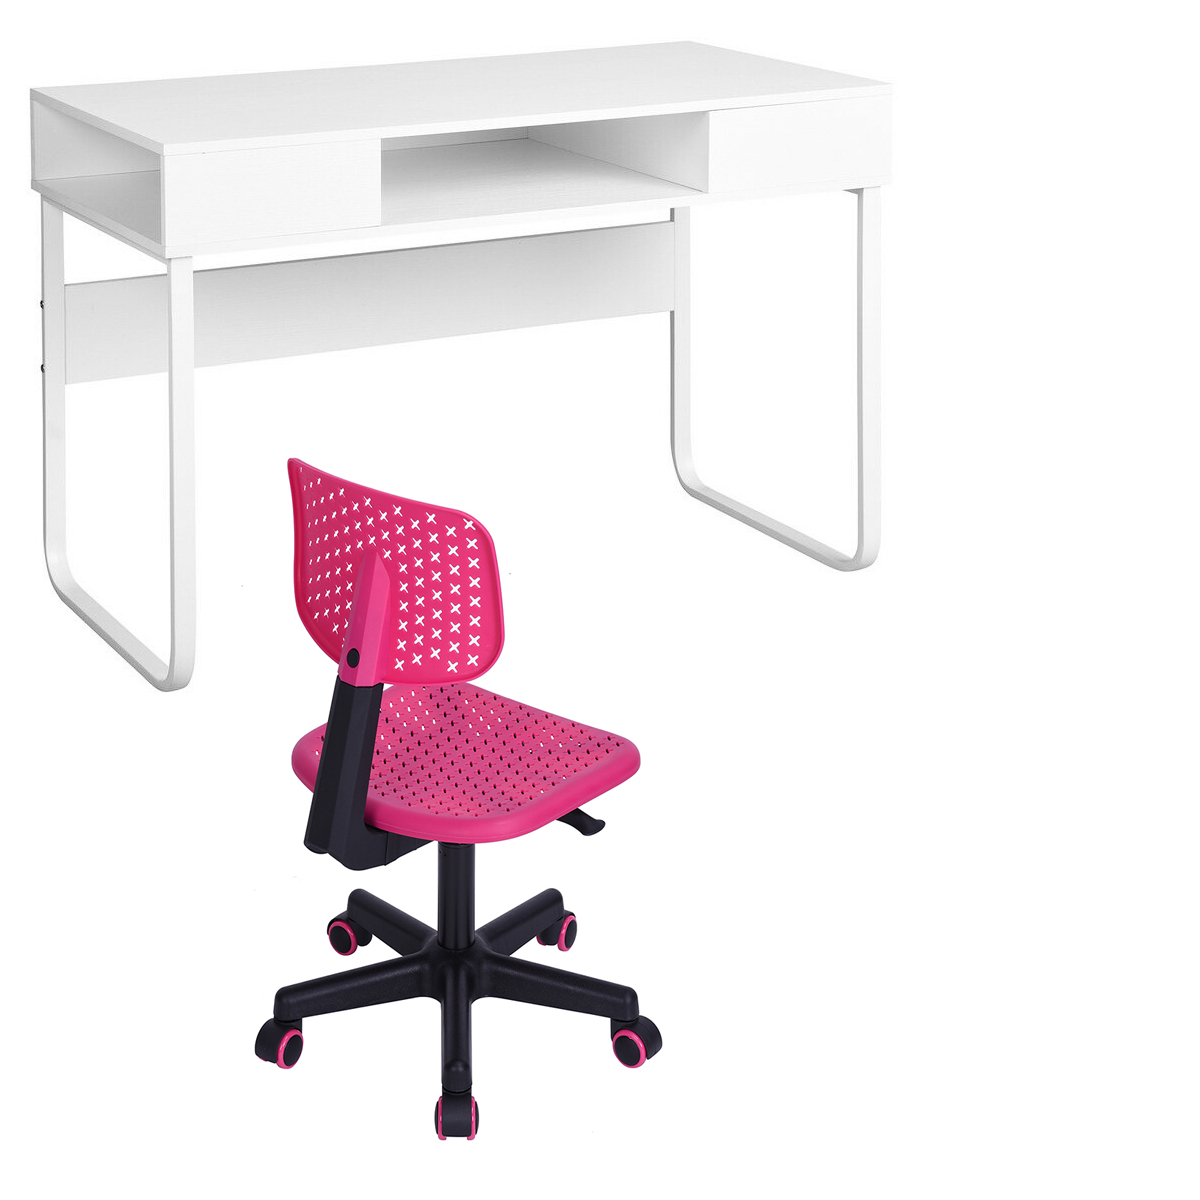 Super Details About Back To School Computer Desk Chair Set Workstation For Kids Students Study Room Ibusinesslaw Wood Chair Design Ideas Ibusinesslaworg